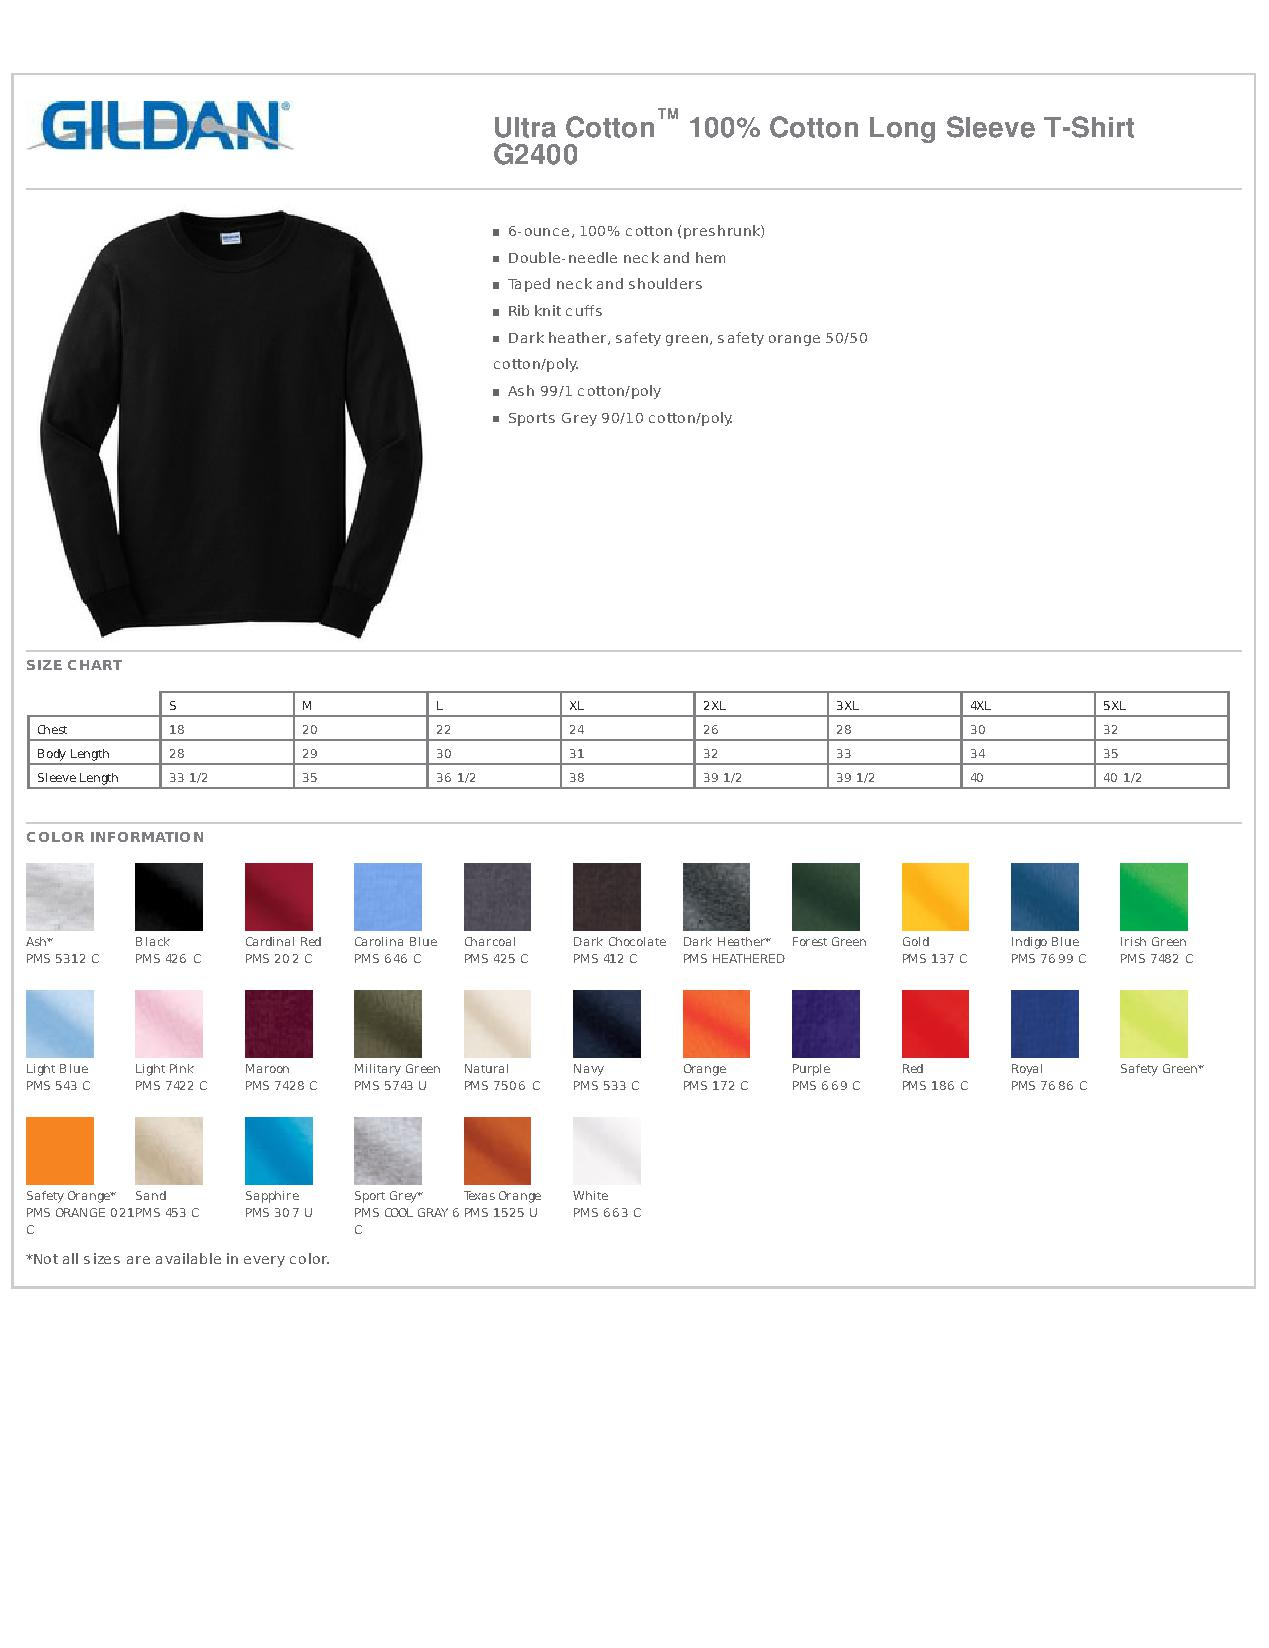 Gildan g2400 ultra cotton 100 cotton long sleeve t shirt mens specs sizing specs nvjuhfo Image collections